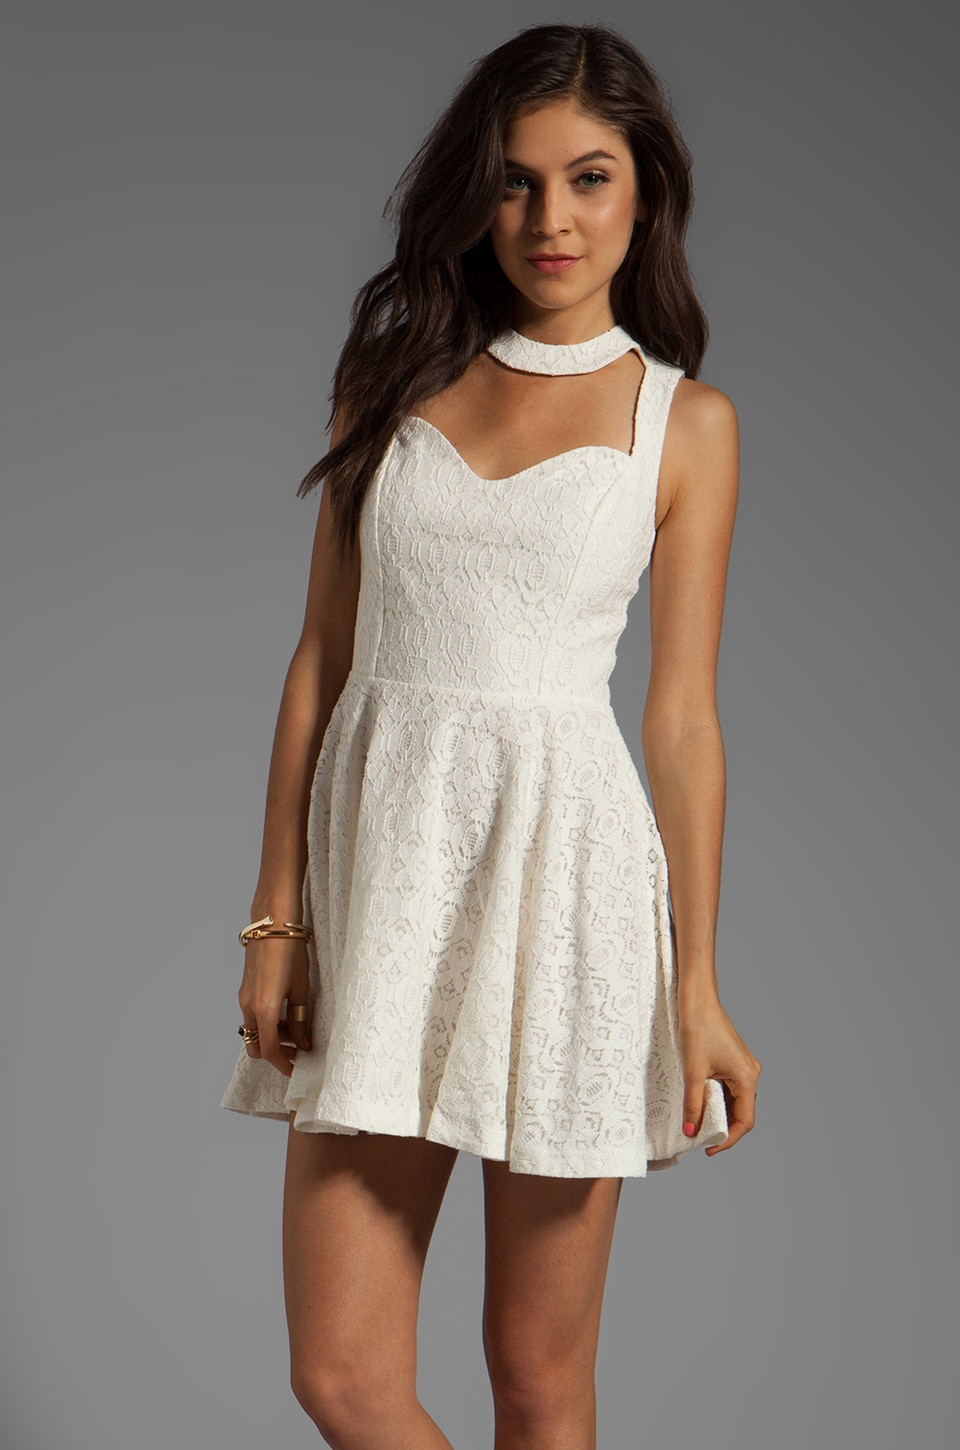 Funktional Sleeveless Frame Dress in White Optical